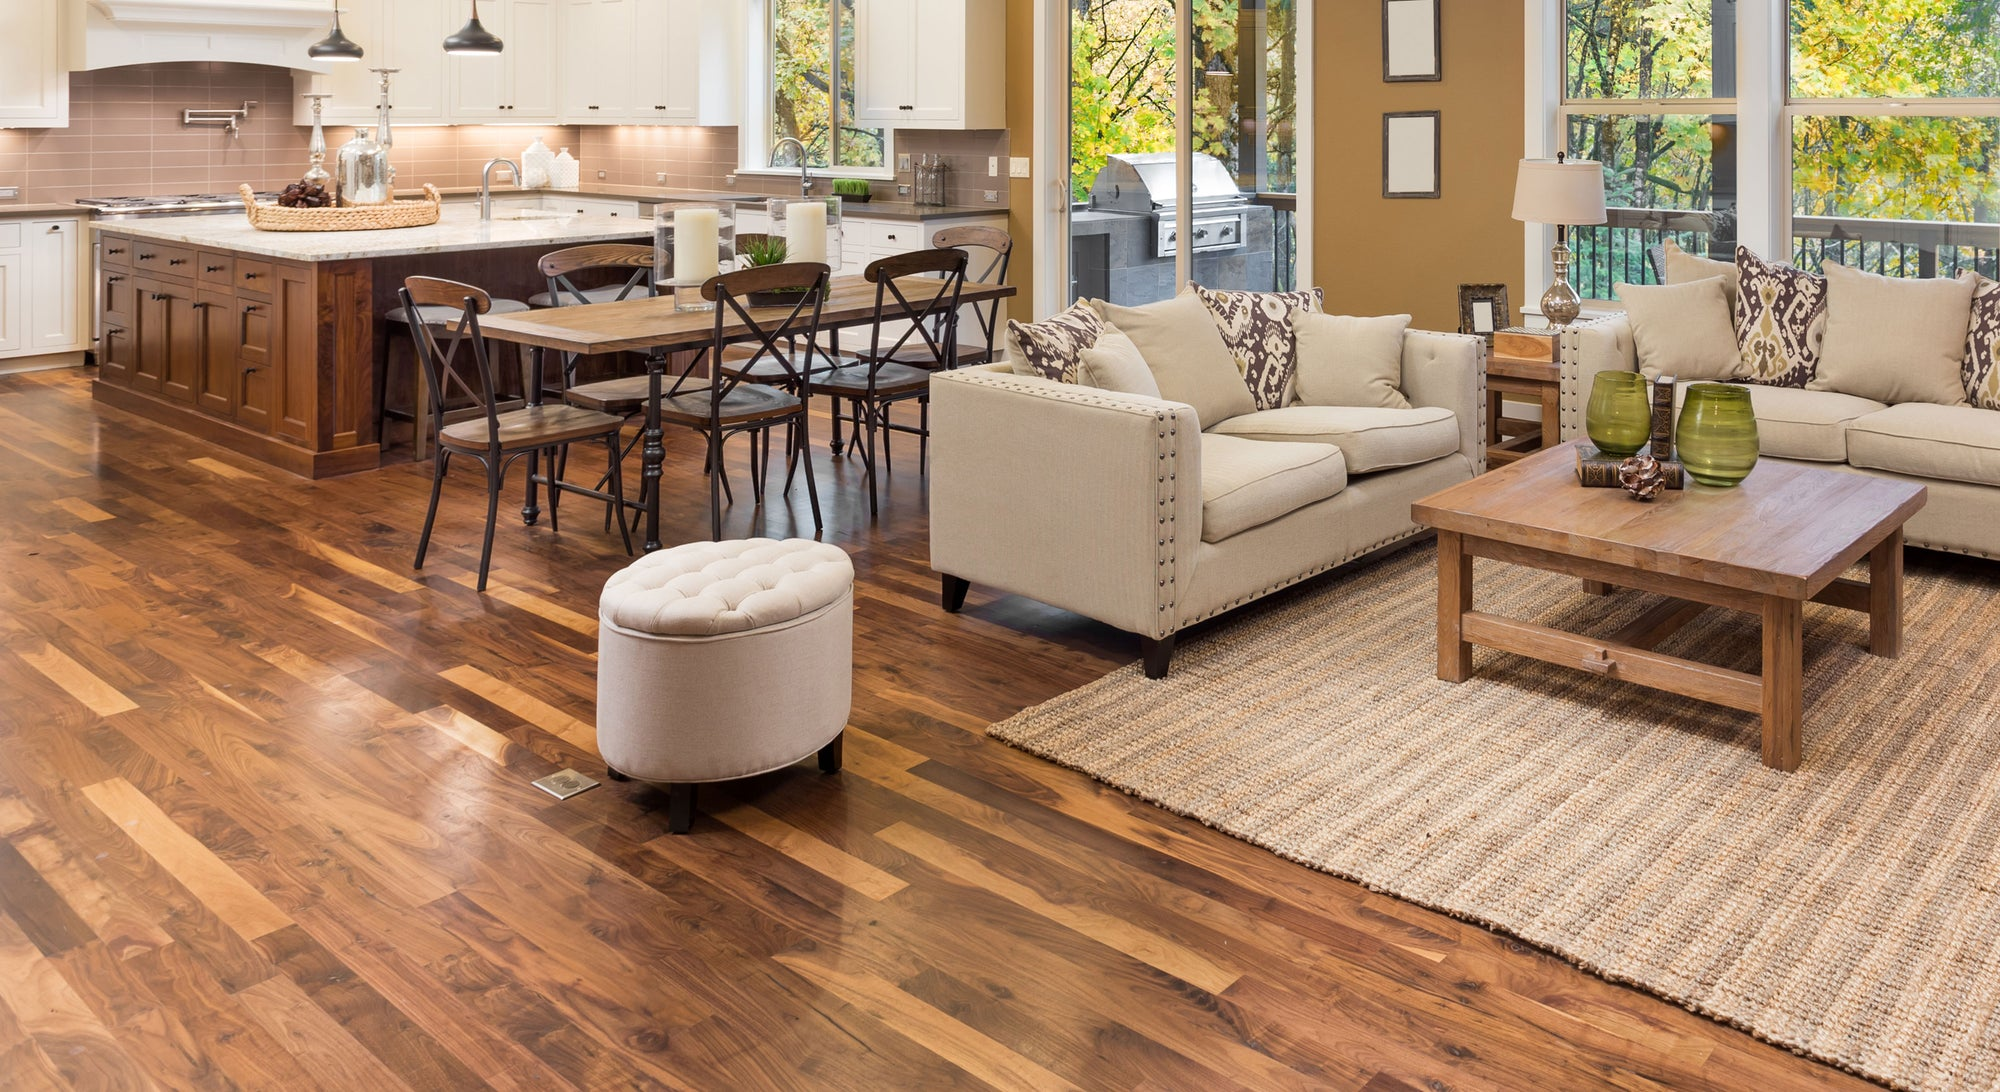 Pittsburgh save on flooring molyneaux carpet tile wood molyneaux pittsburgh save on flooring molyneaux carpet tile wood molyneaux tile carpet wood dailygadgetfo Choice Image